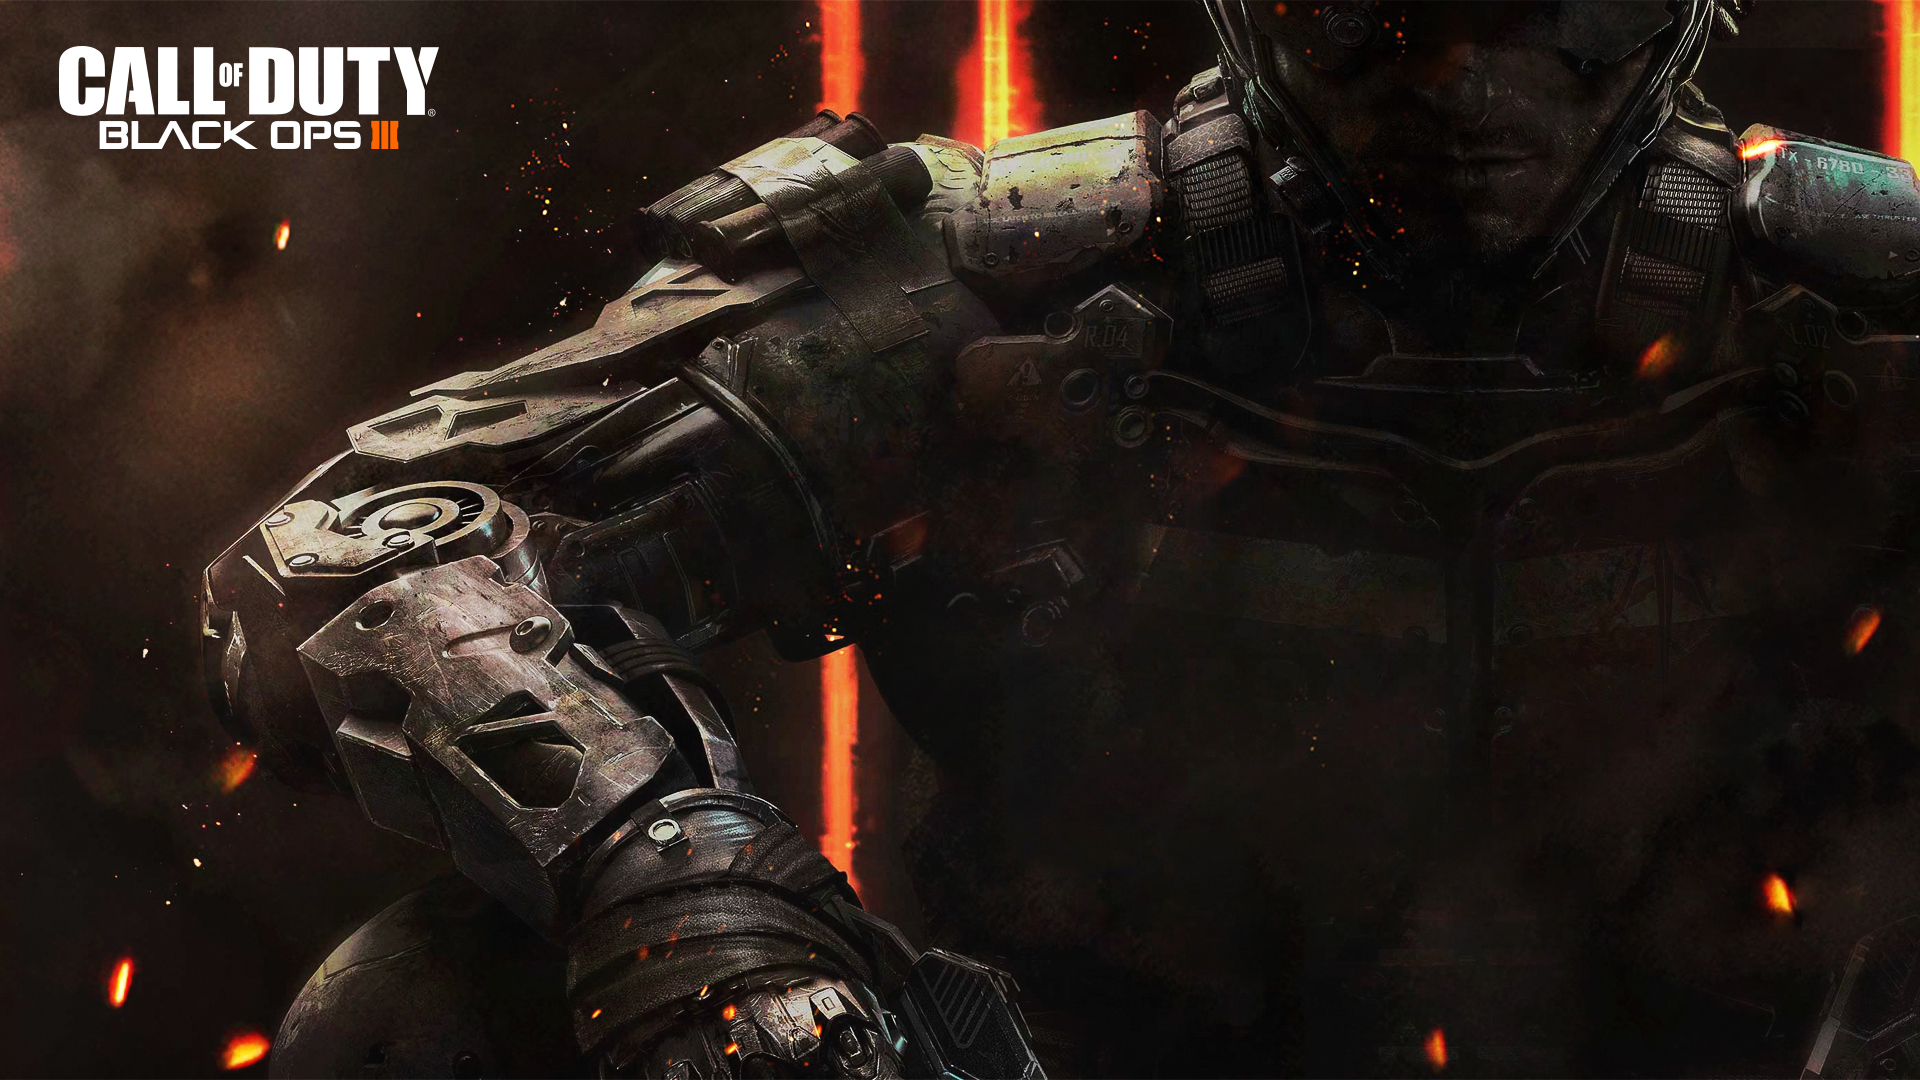 Download Black Ops 3 Wallpapers BO3 Download Unofficial Call